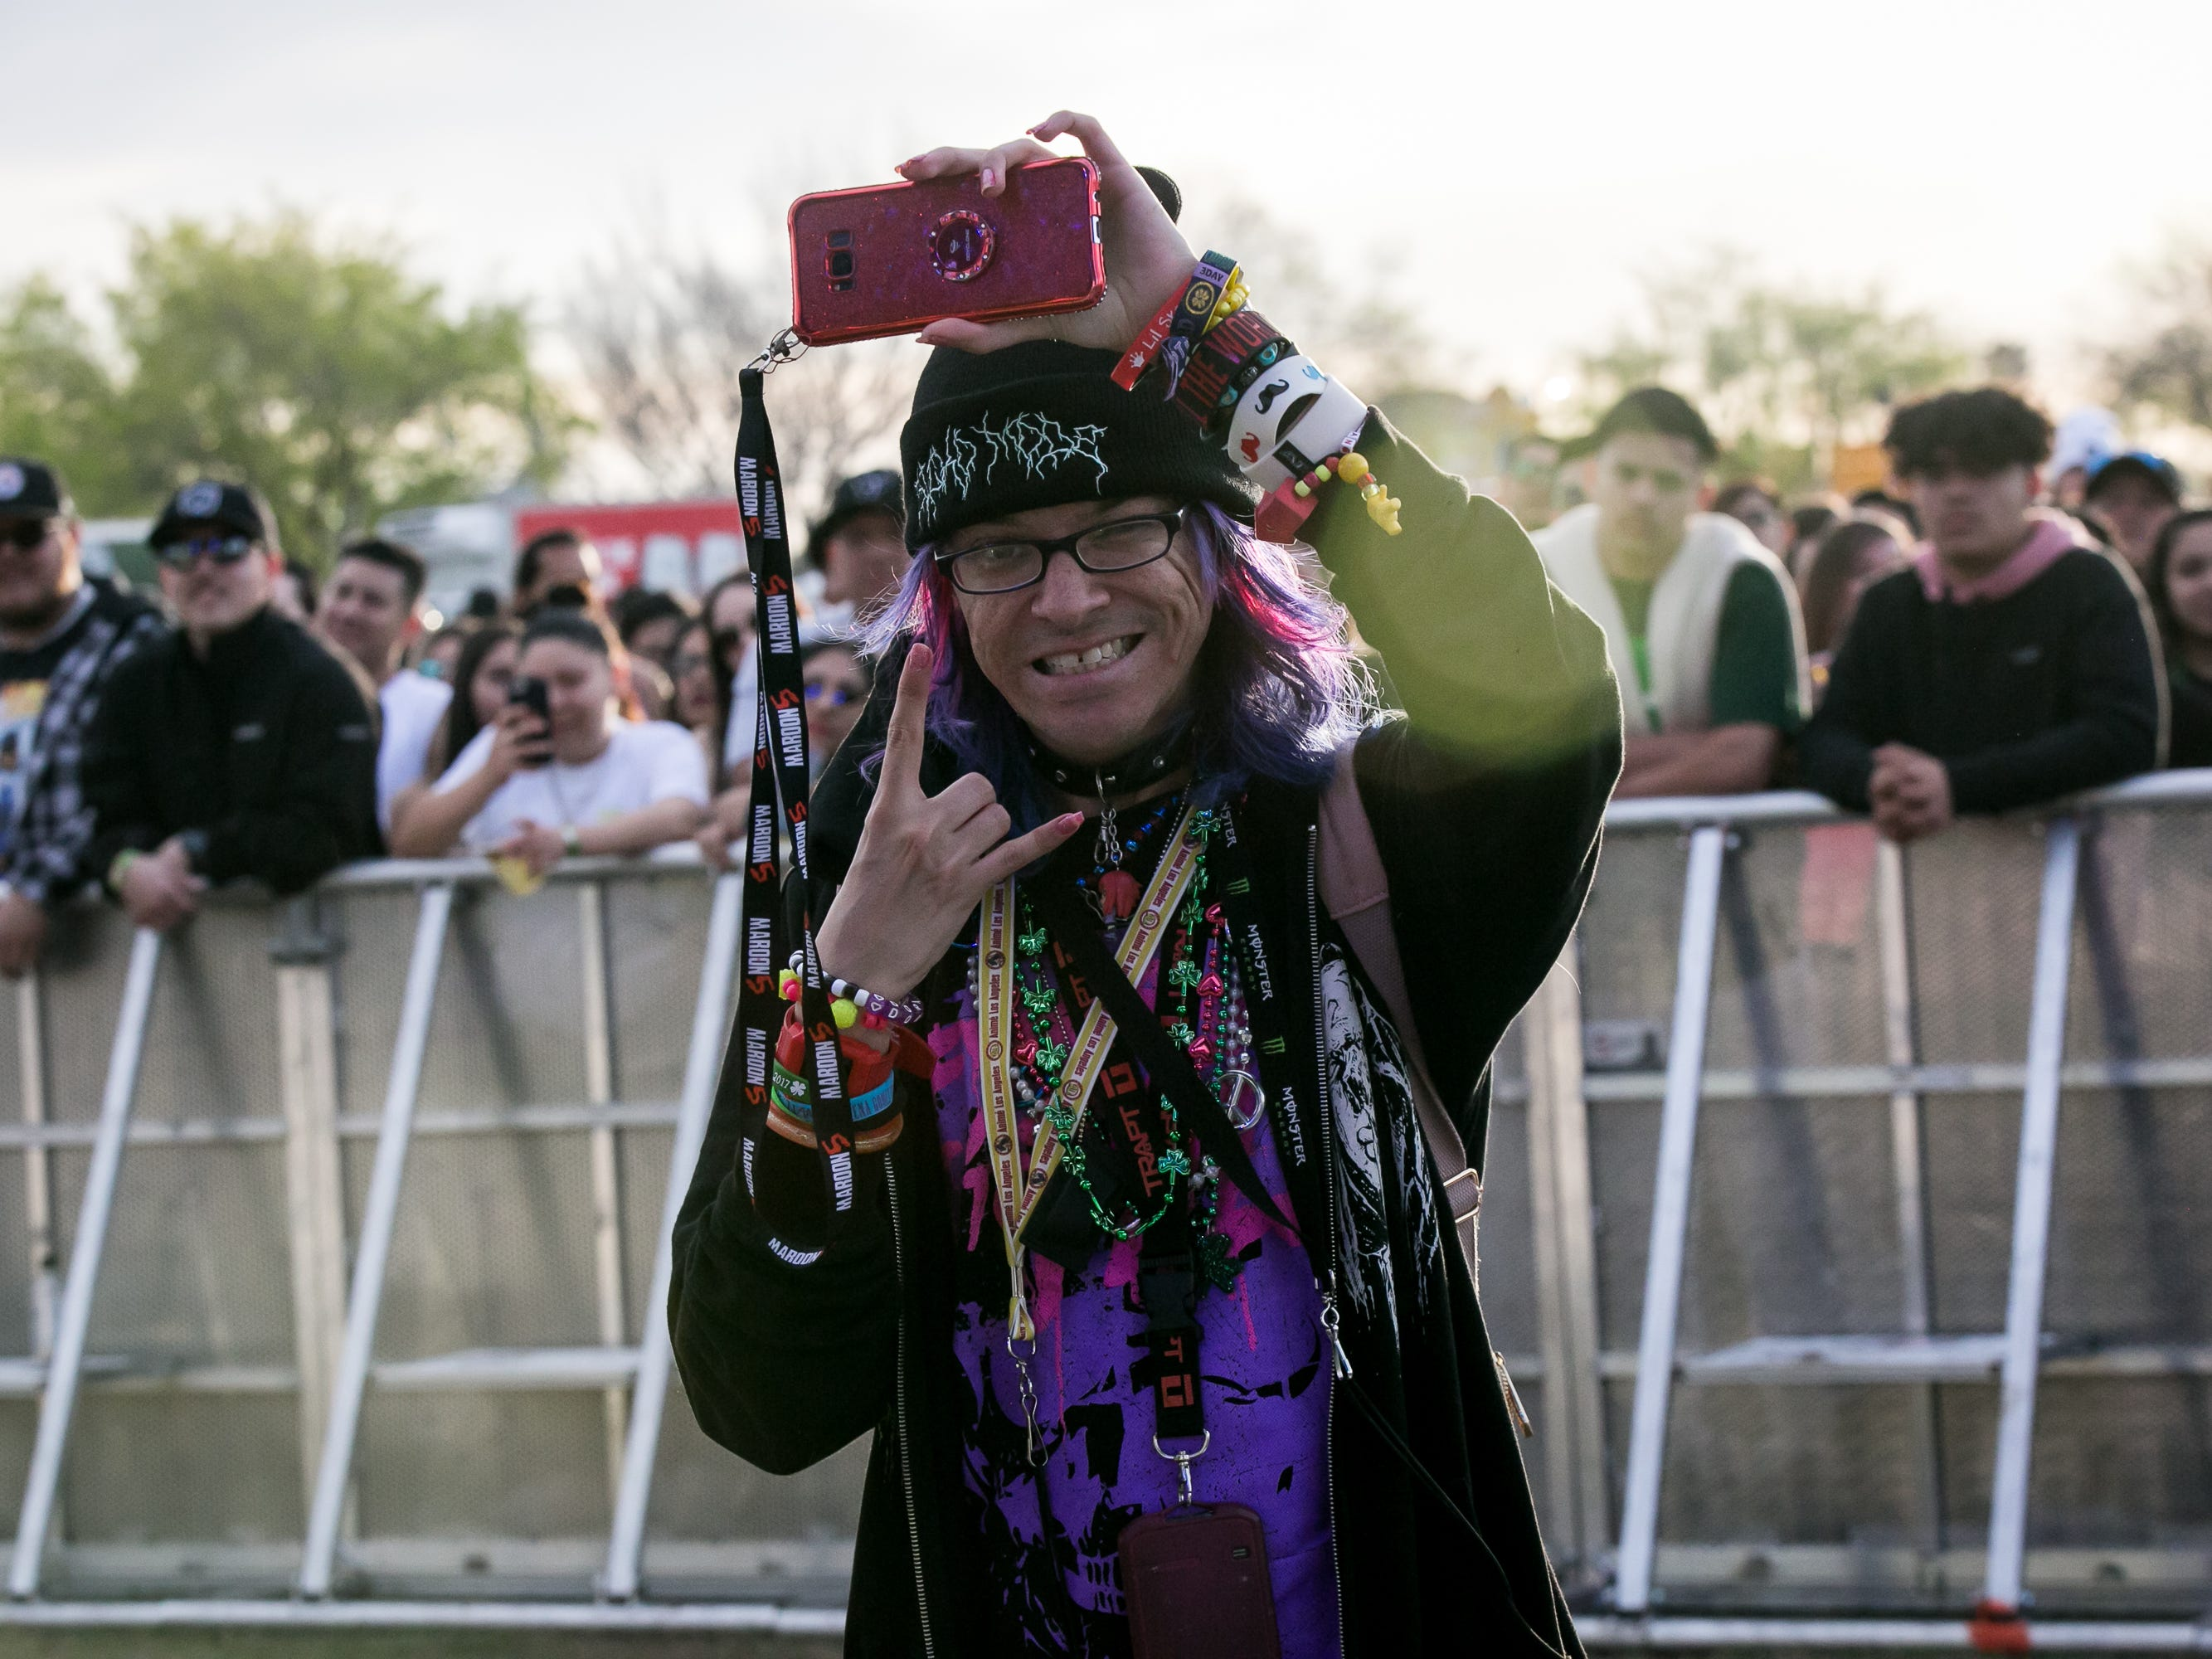 This purple and pink color scheme was featured at Pot of Gold Music Festival at Steele Indian School Park on Friday, March 15, 2019.